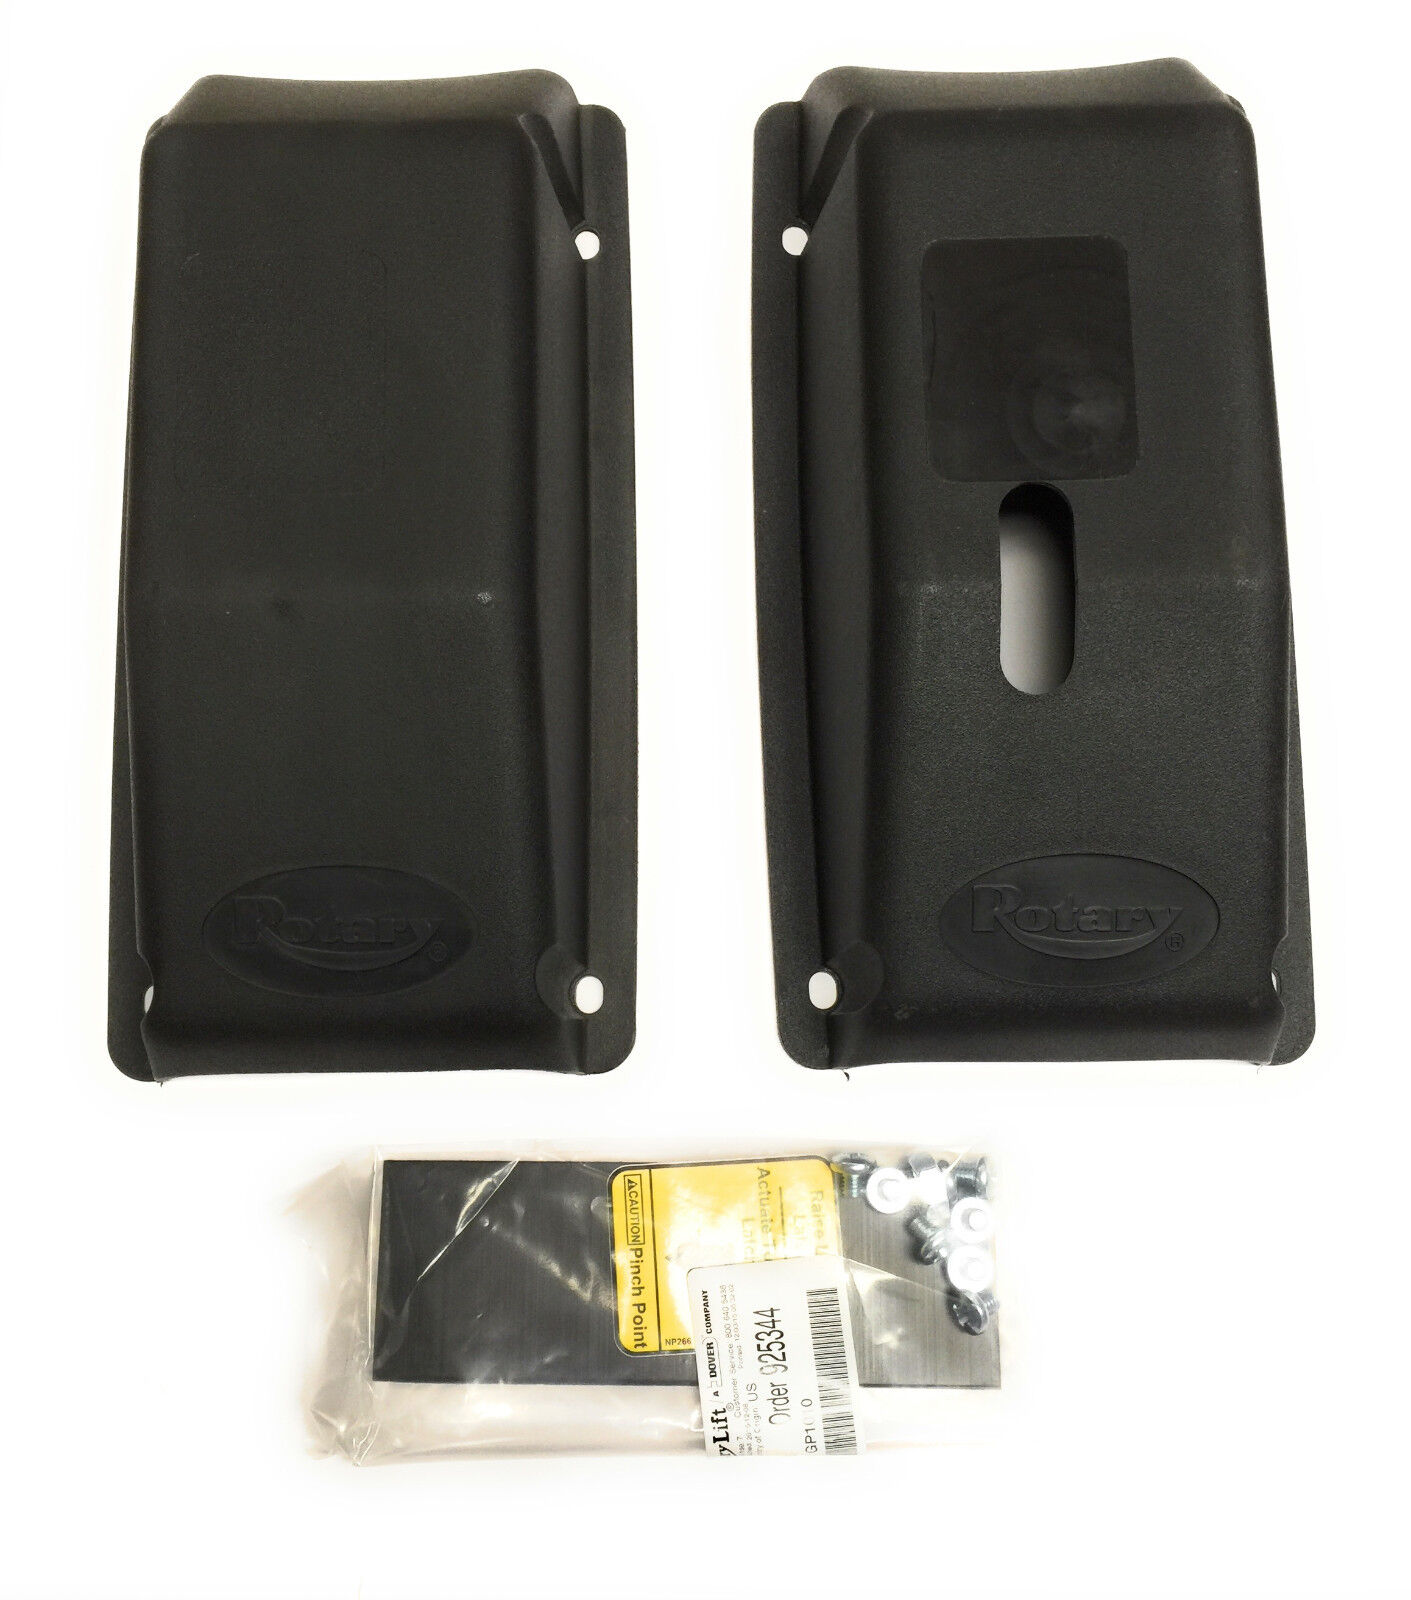 Gp1010 Safety Lock Cover Kit For Rotary Lift 2-post